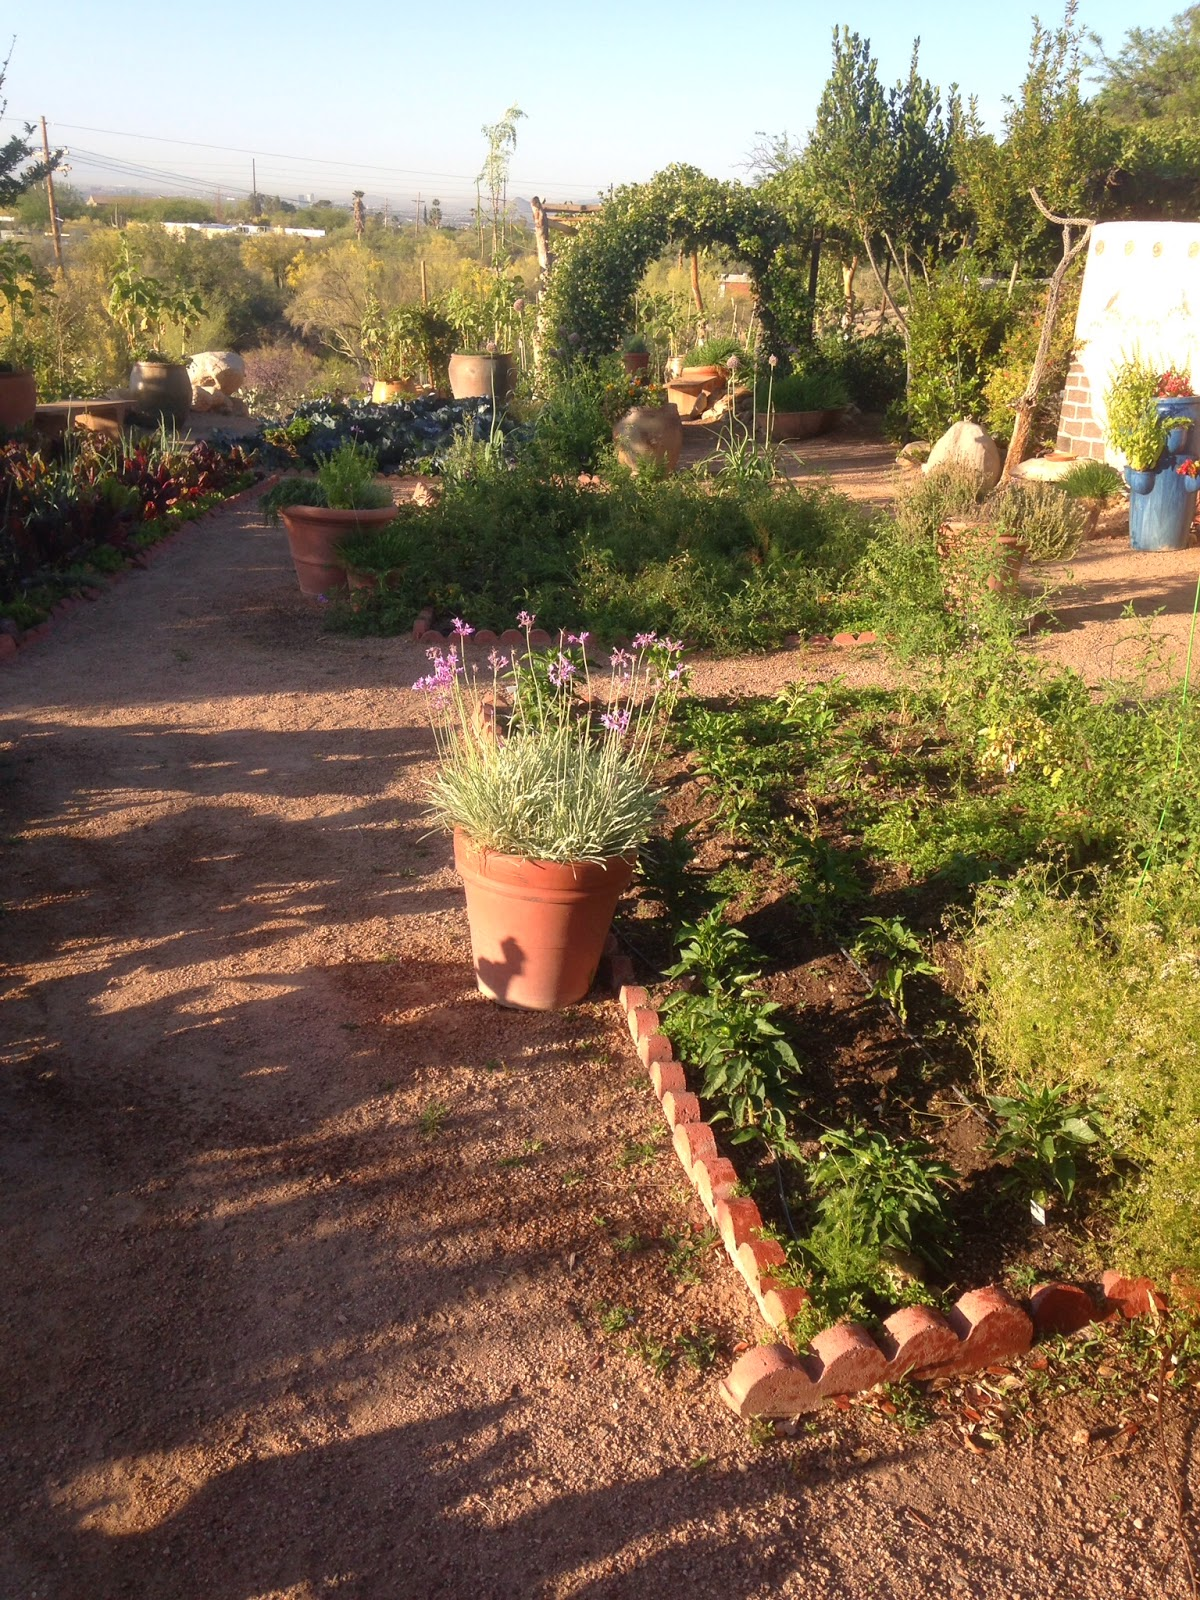 VegHeadz: Sustainable Gardening in the Desert